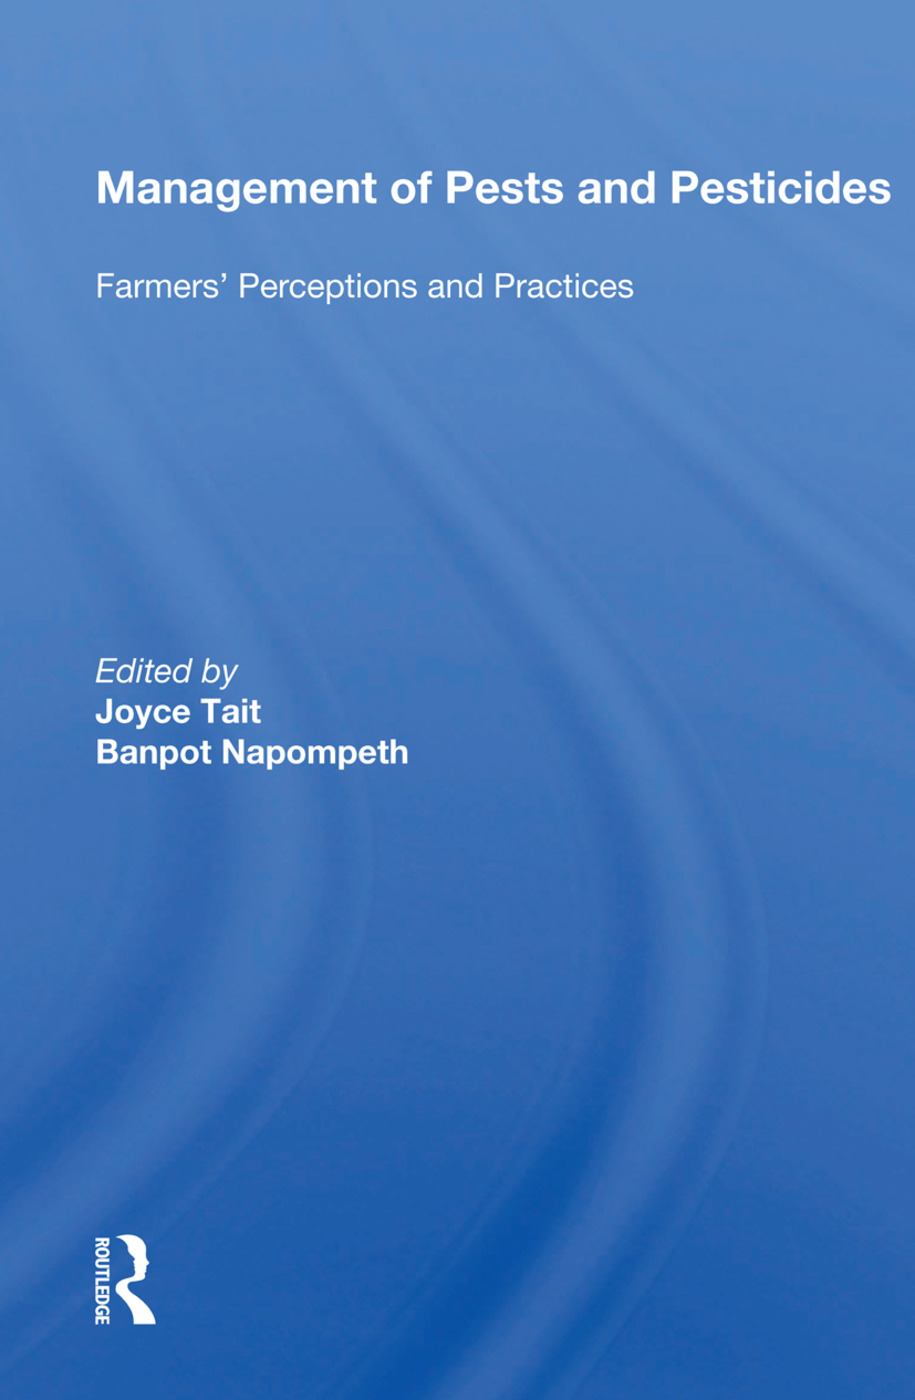 Management Of Pests And Pesticides: Farmers' Perceptions And Practices, 1st Edition (Paperback) book cover